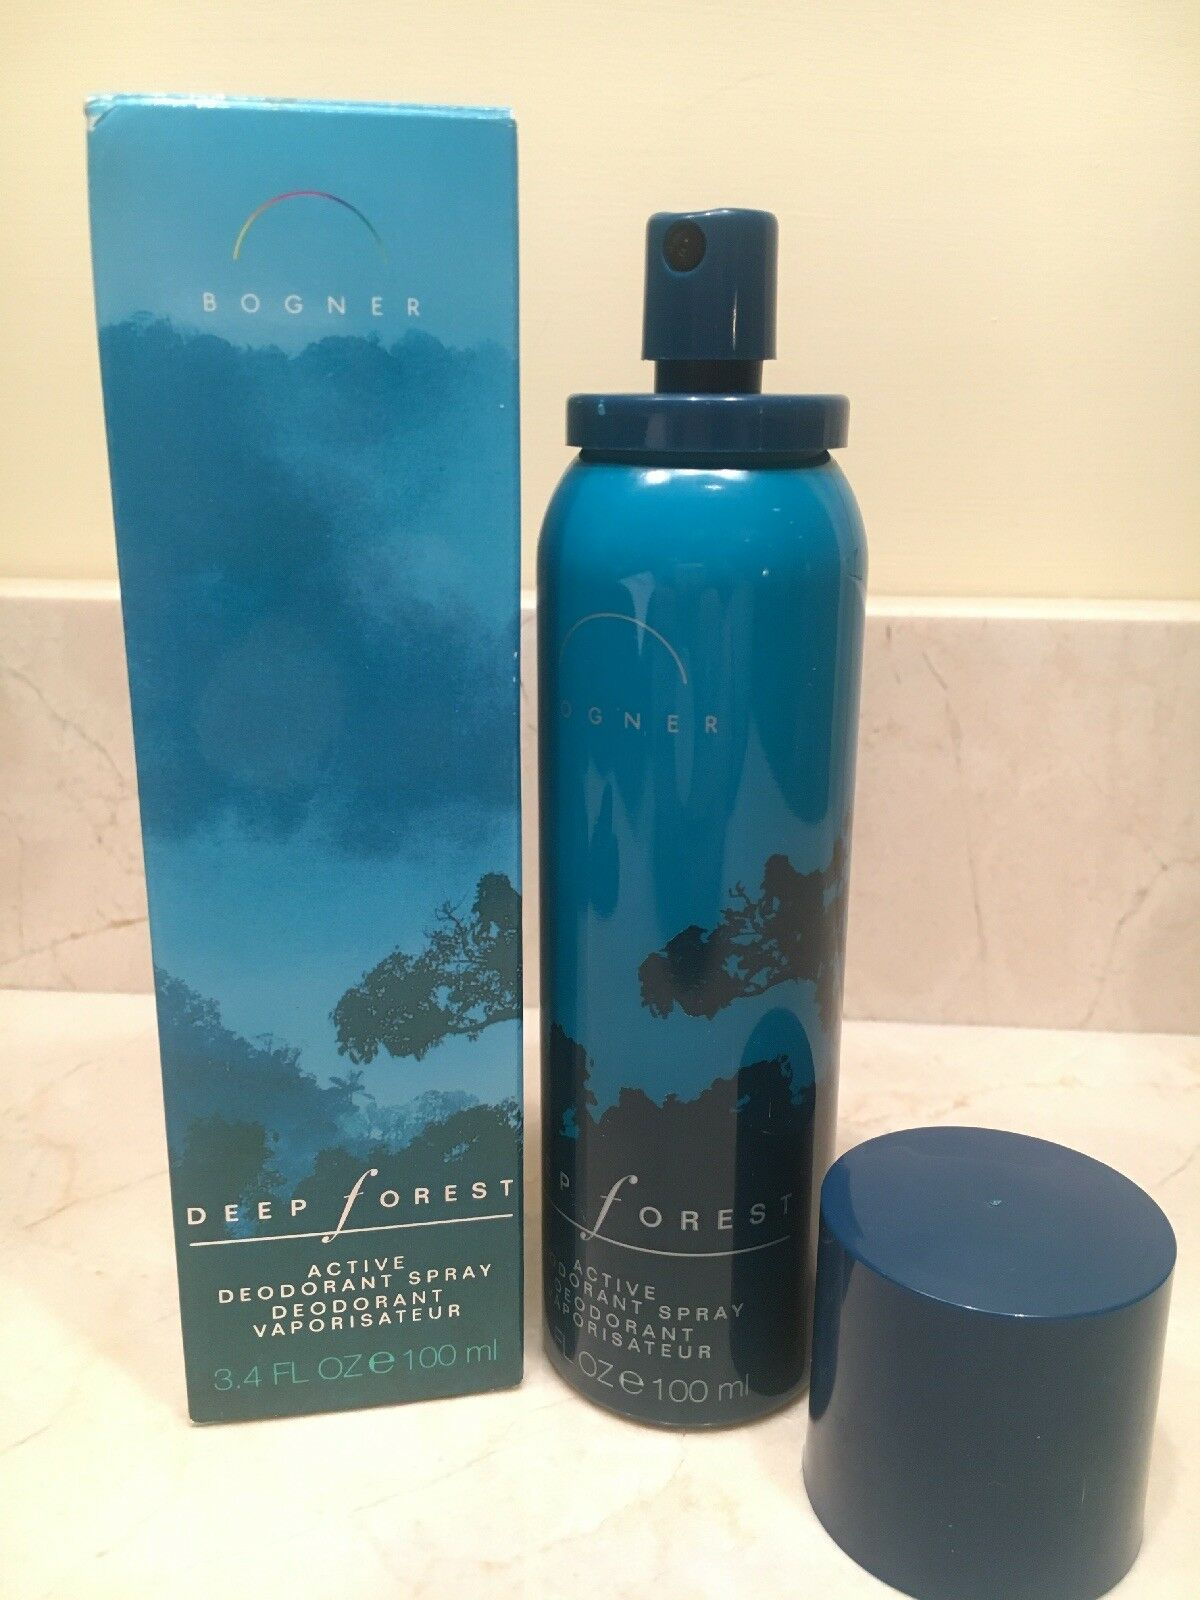 no sale tax clearance prices details for Bogner Deep Forest Active Deodorant Spray for Men 3.4 fl oz NIB